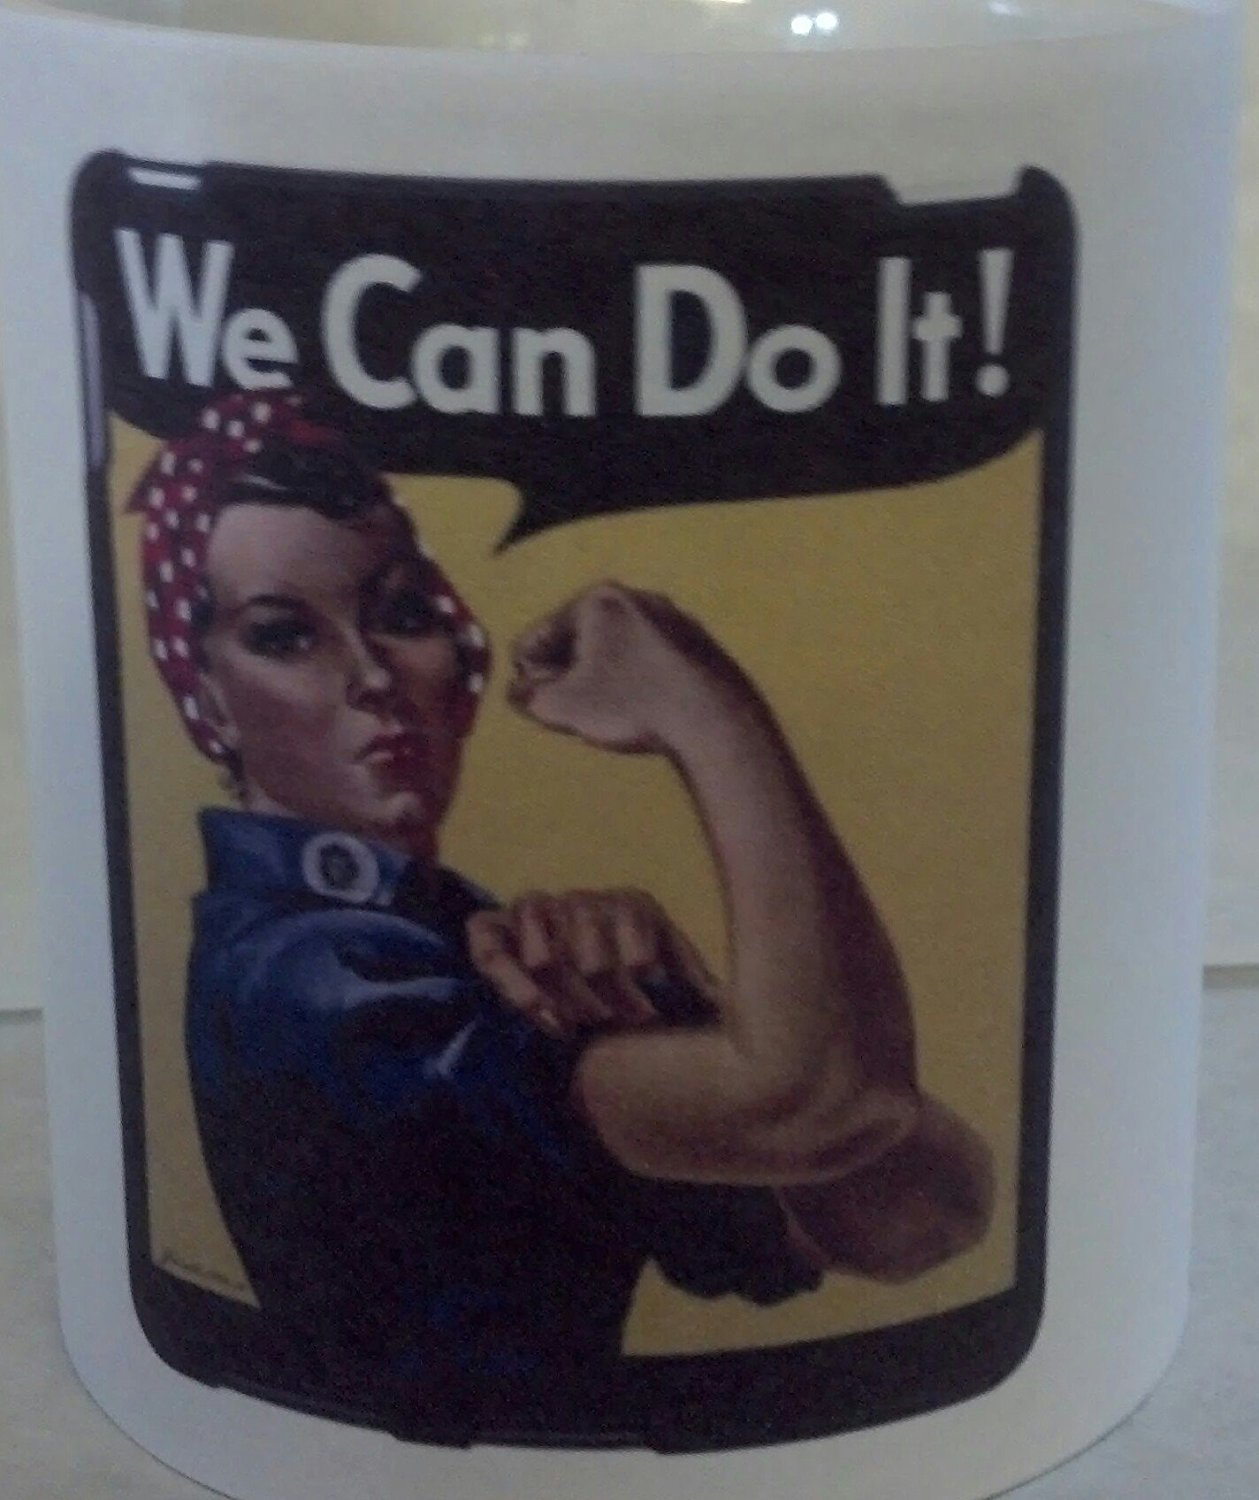 WE CAN DO IT COFFEE MUG 11 OZ.